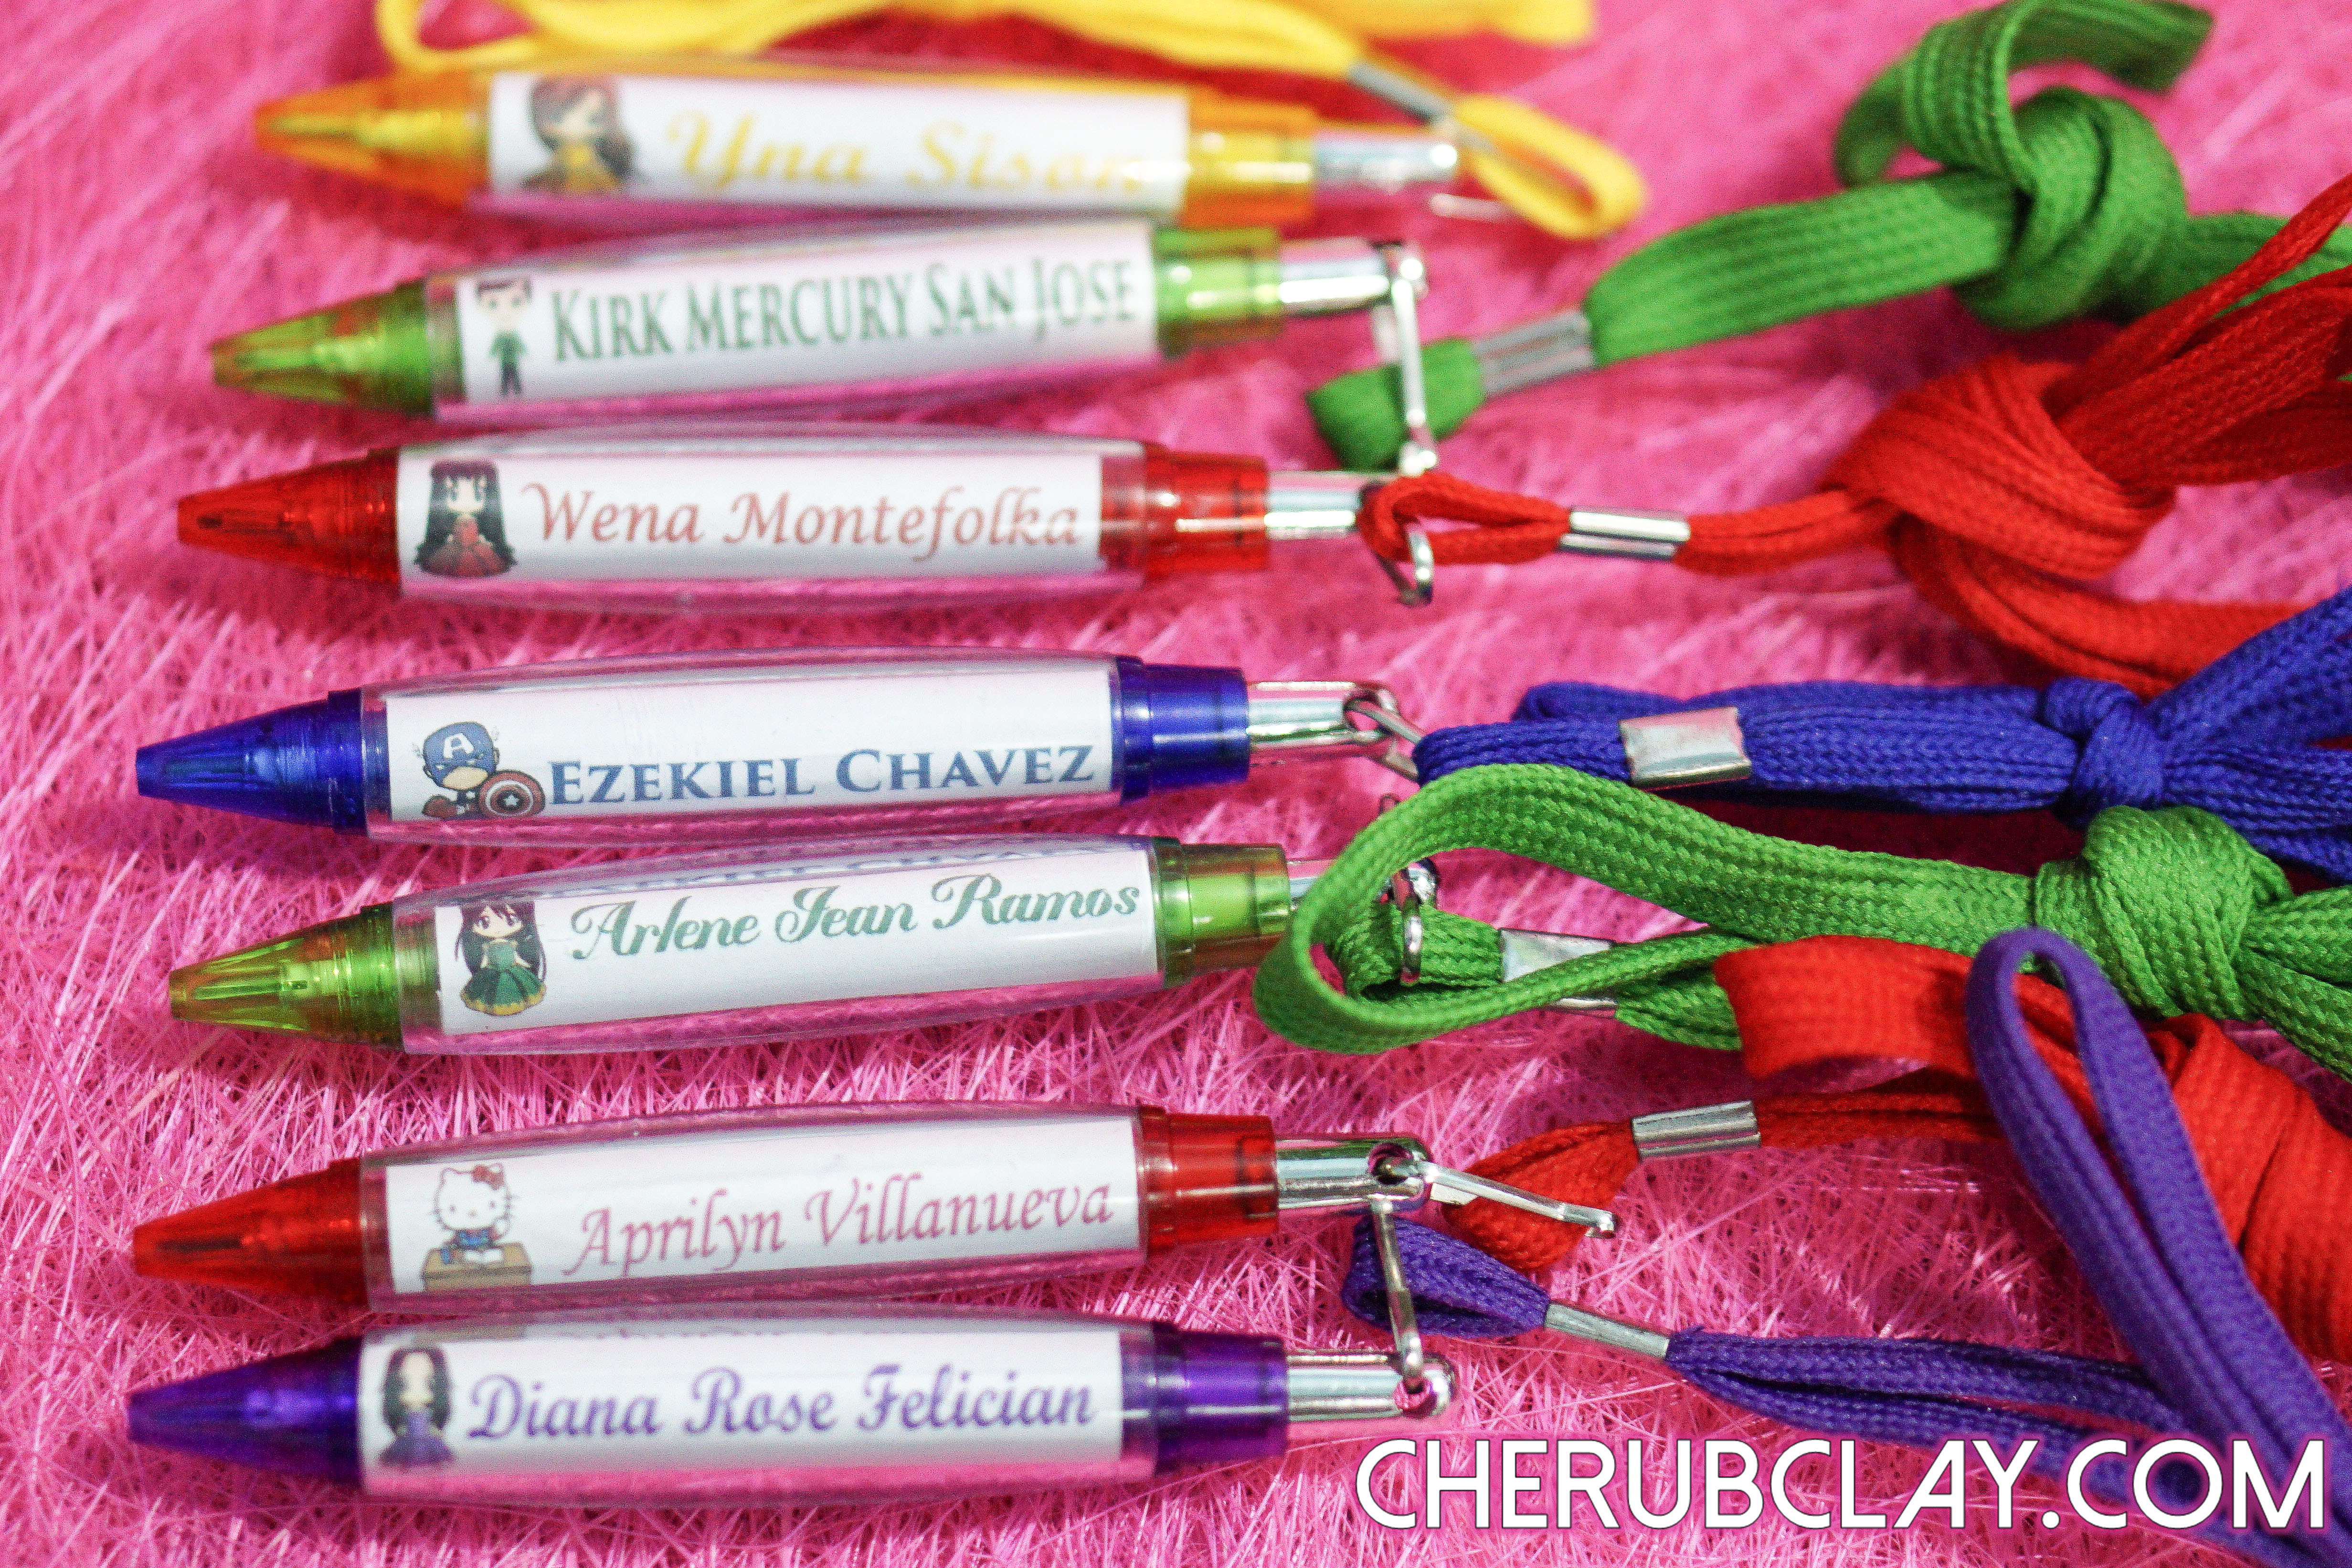 Personalized Pens and Notepad – Cherub Clay